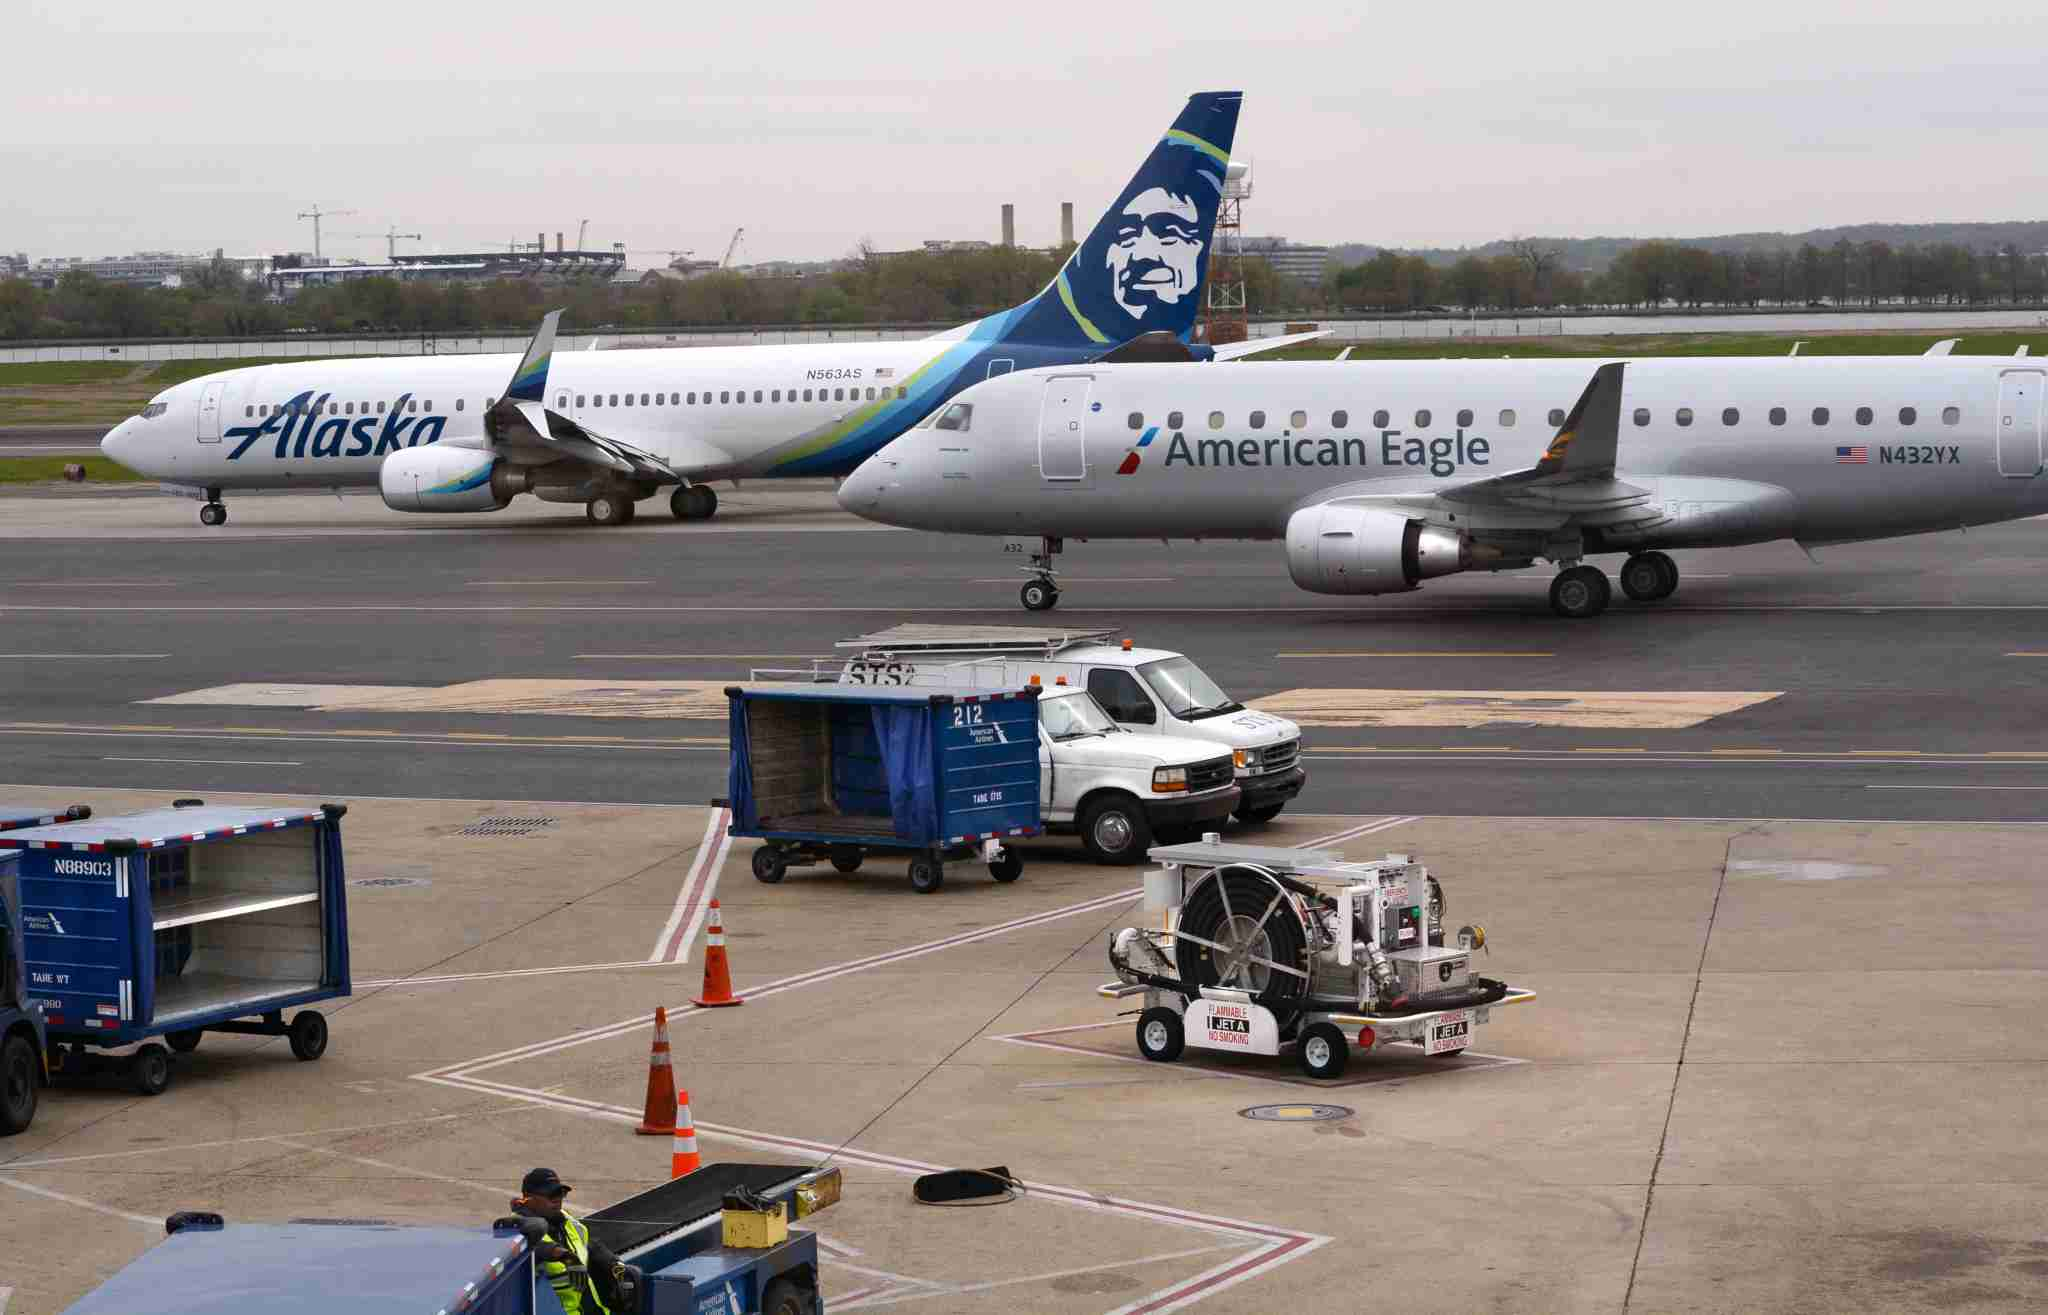 WASHINGTON, D.C. - APRIL 24, 2018: An Alaska Airlines and American Eagle jet taxi toward the runway at Ronald Reagan Washington National Airport in Washington, D.C. (Photo by Robert Alexander/Getty Images)